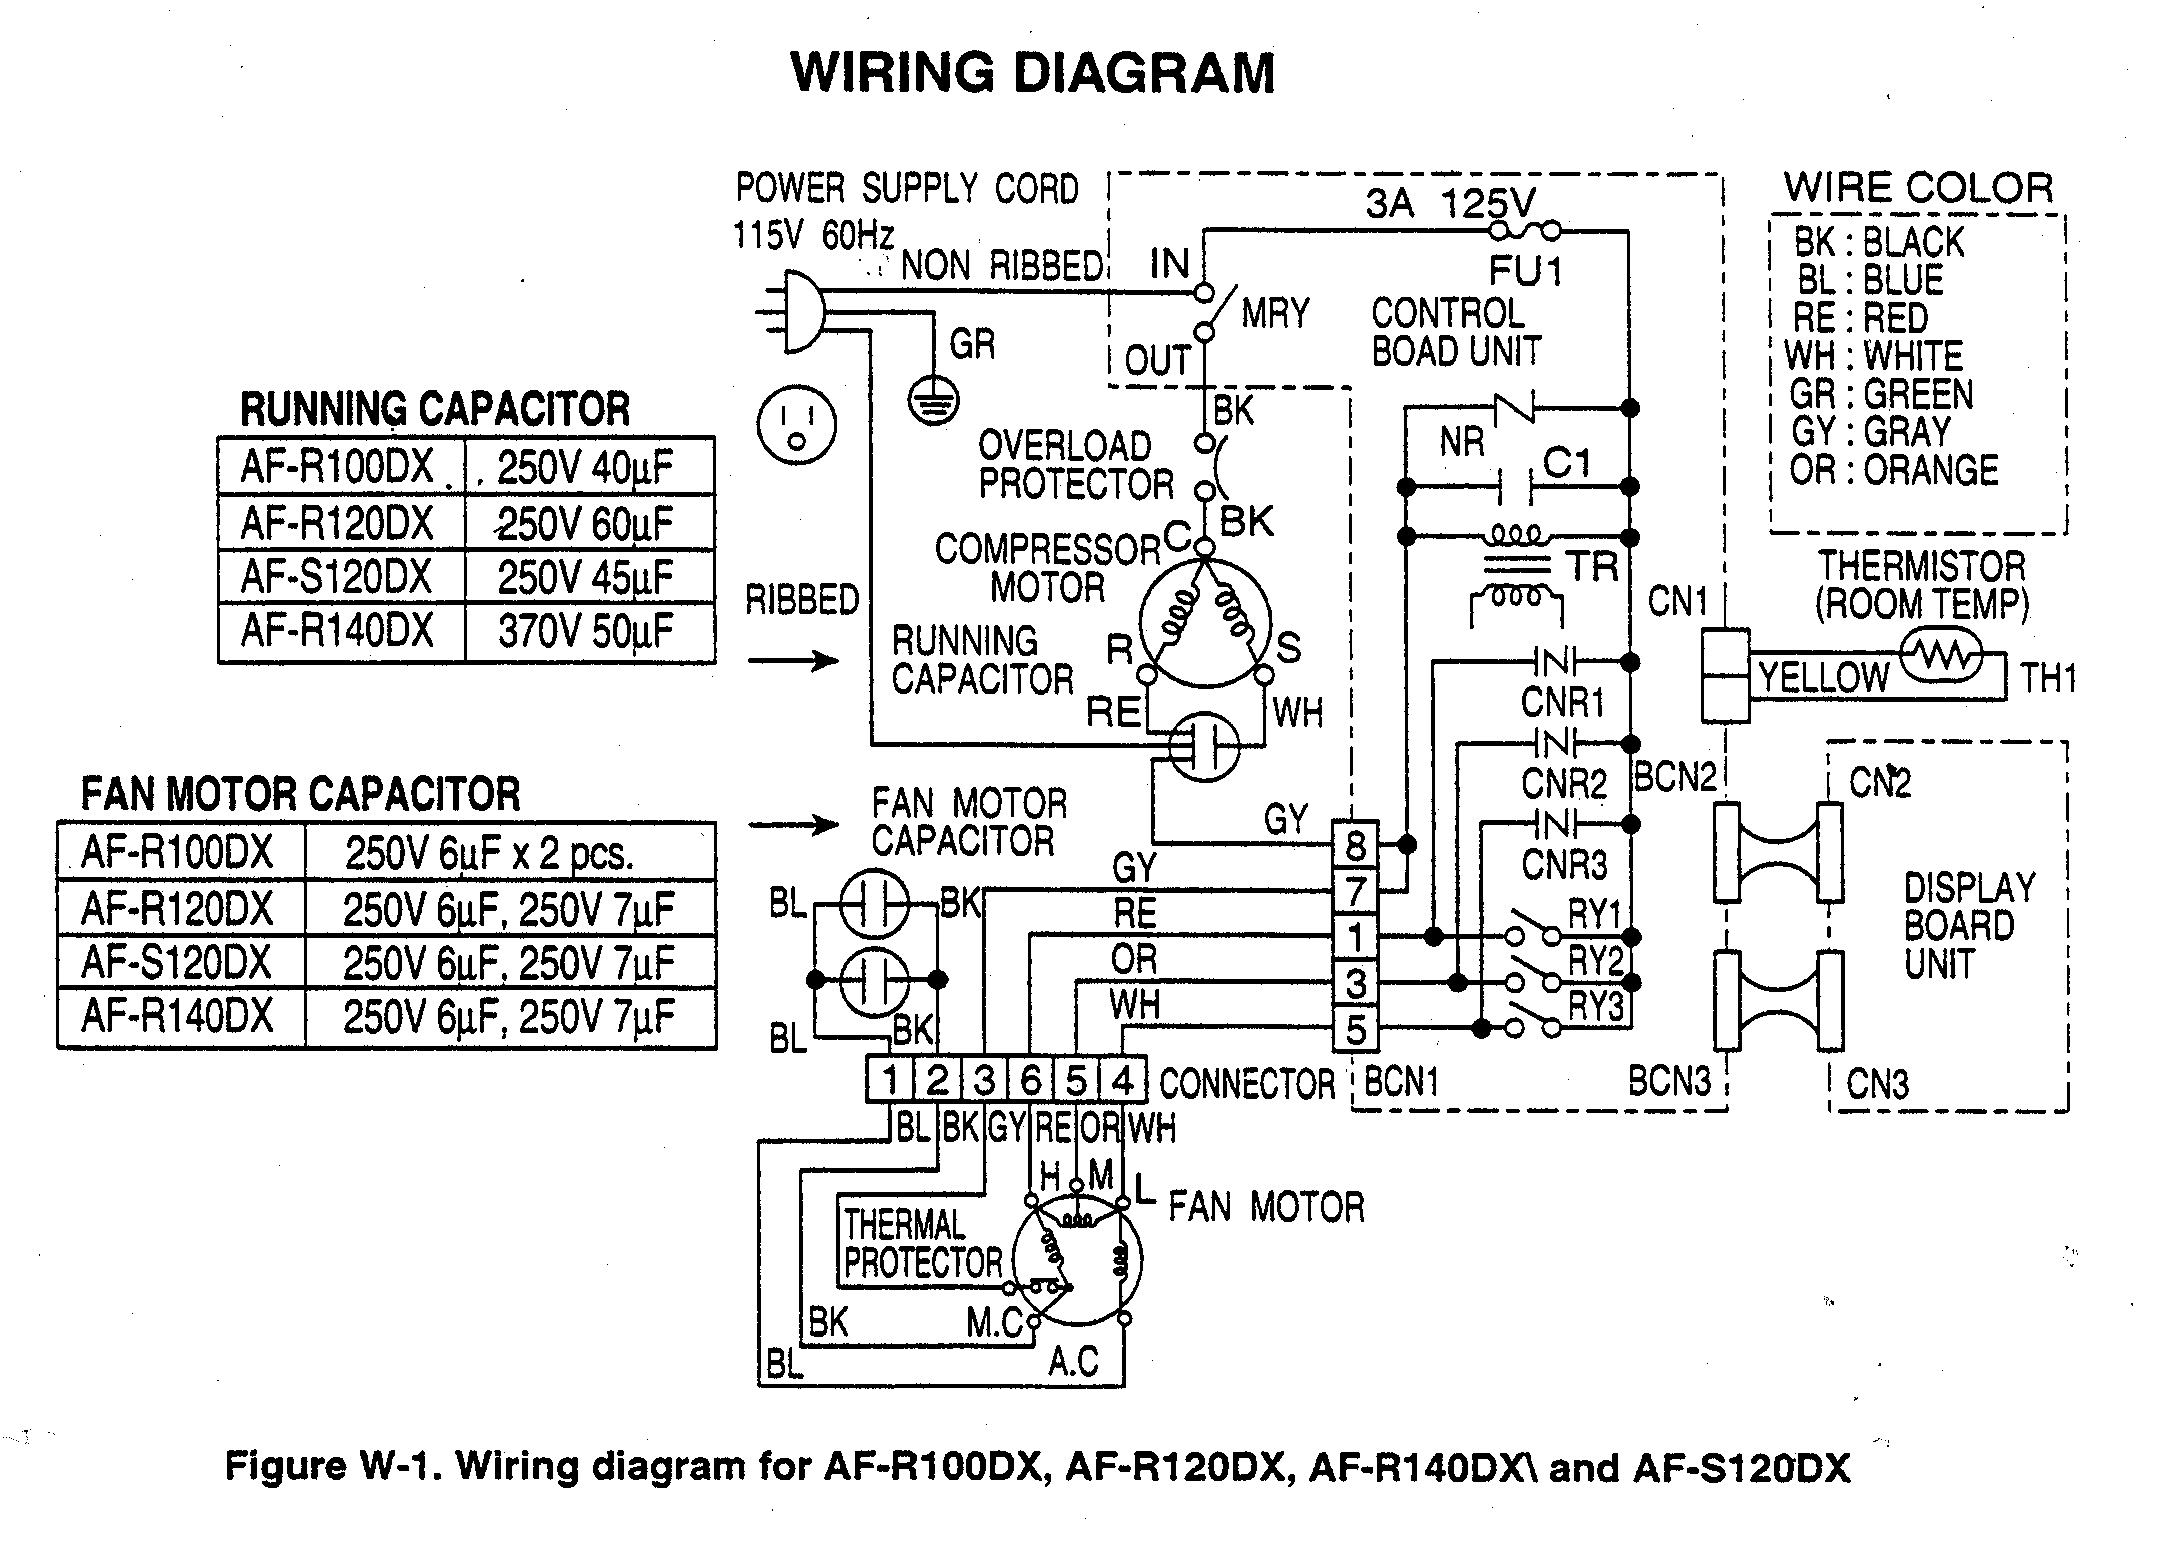 Perfect Motor Capacitor Wiring Diagram Image Collection - Everything ...